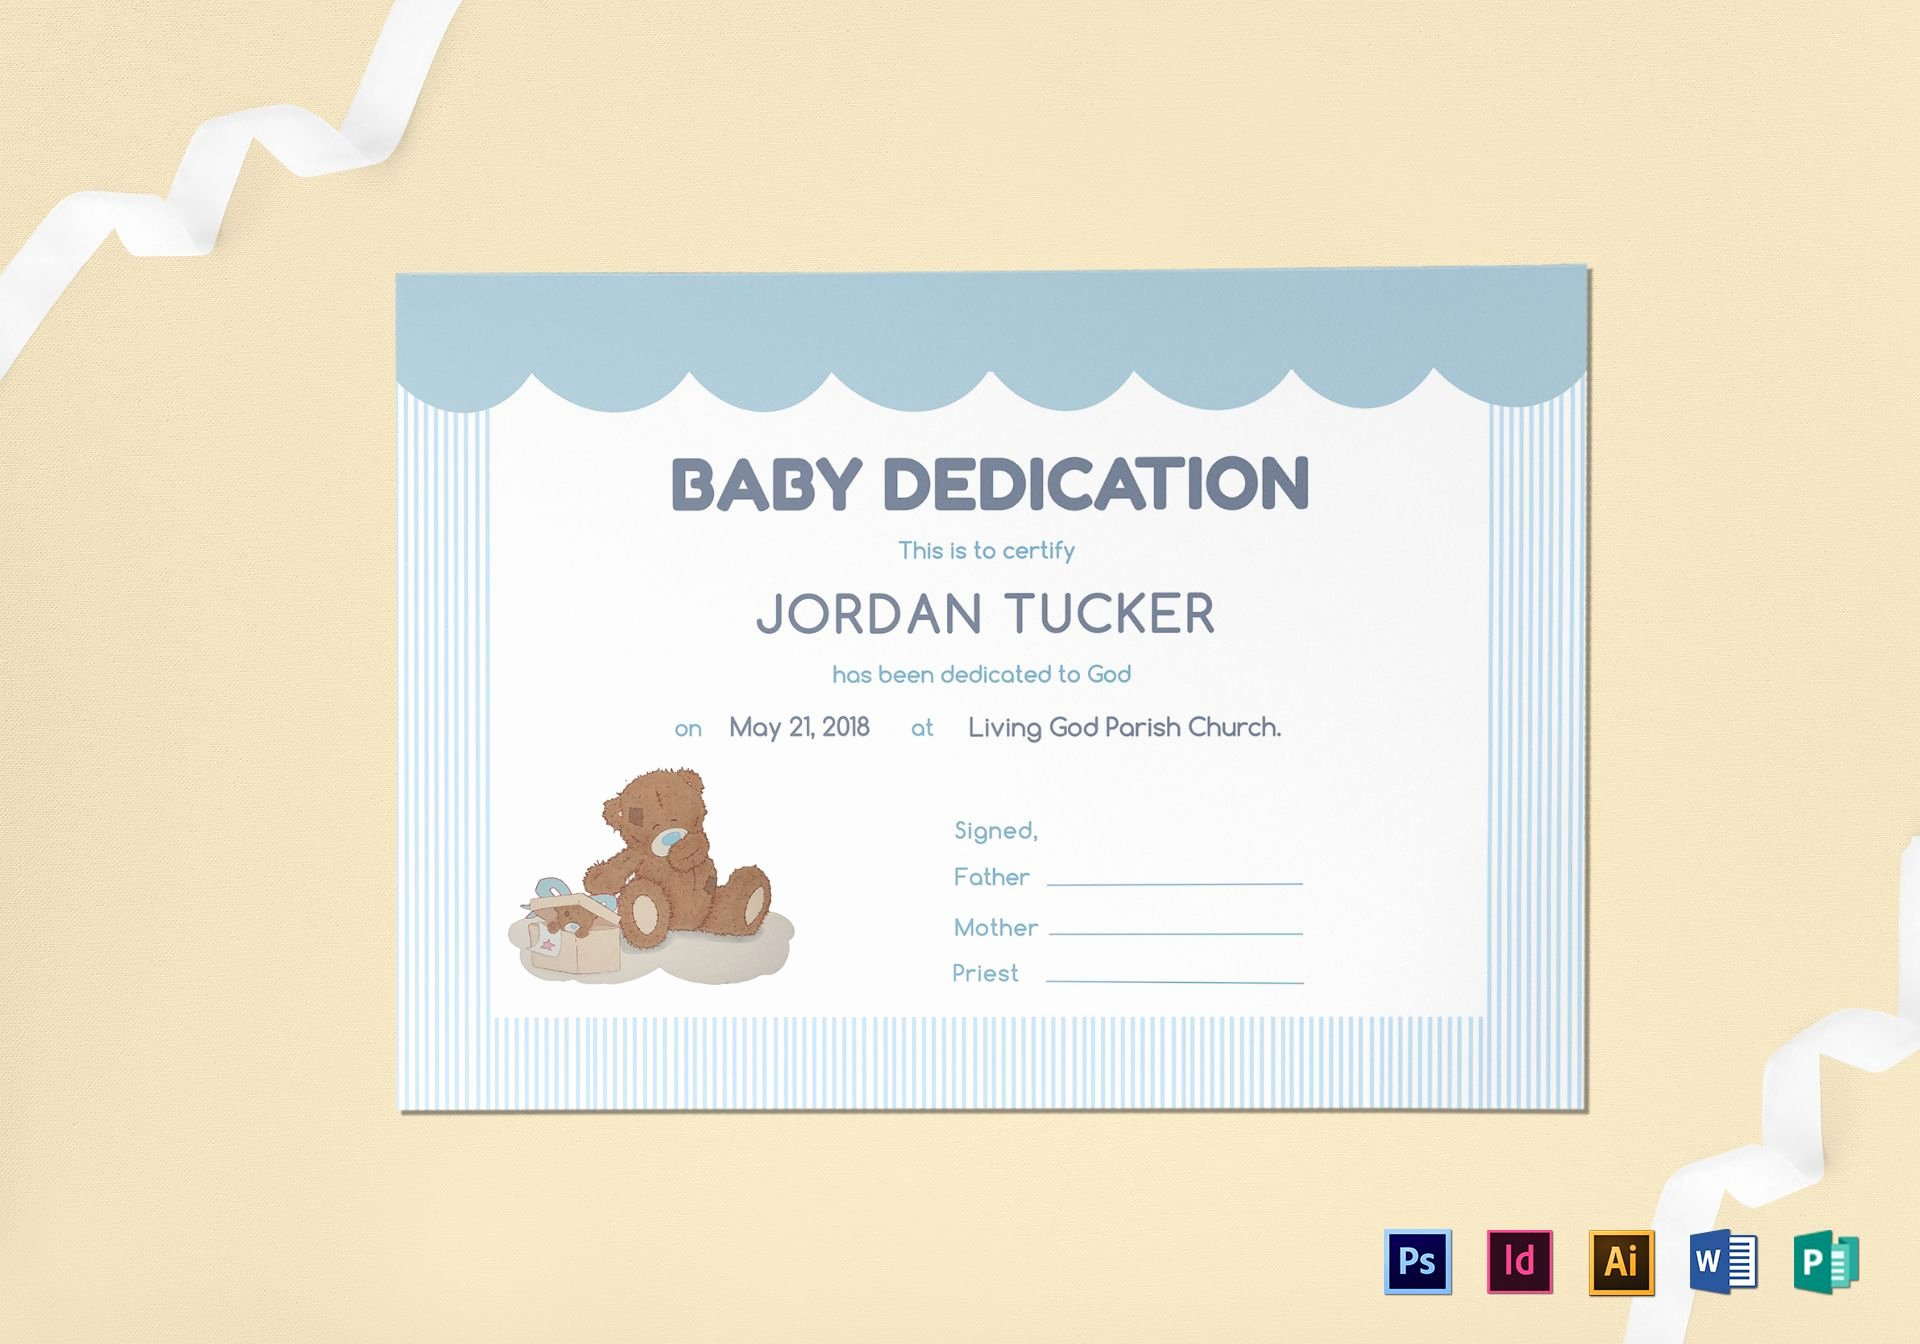 Baby Dedication Certificate Template Elegant Baby Dedication Certificate Design Template In Psd Word